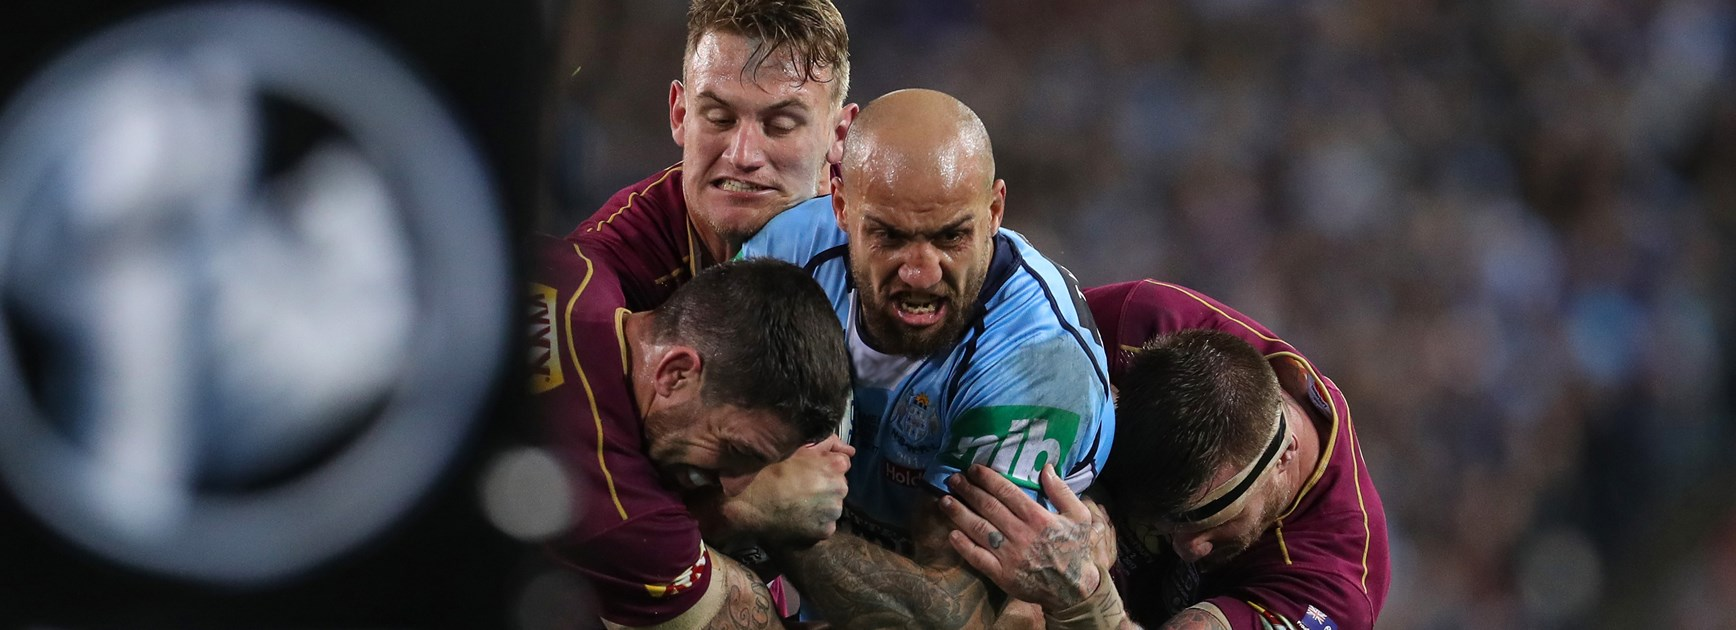 Ferguson Stakes Claim for Origin Selection